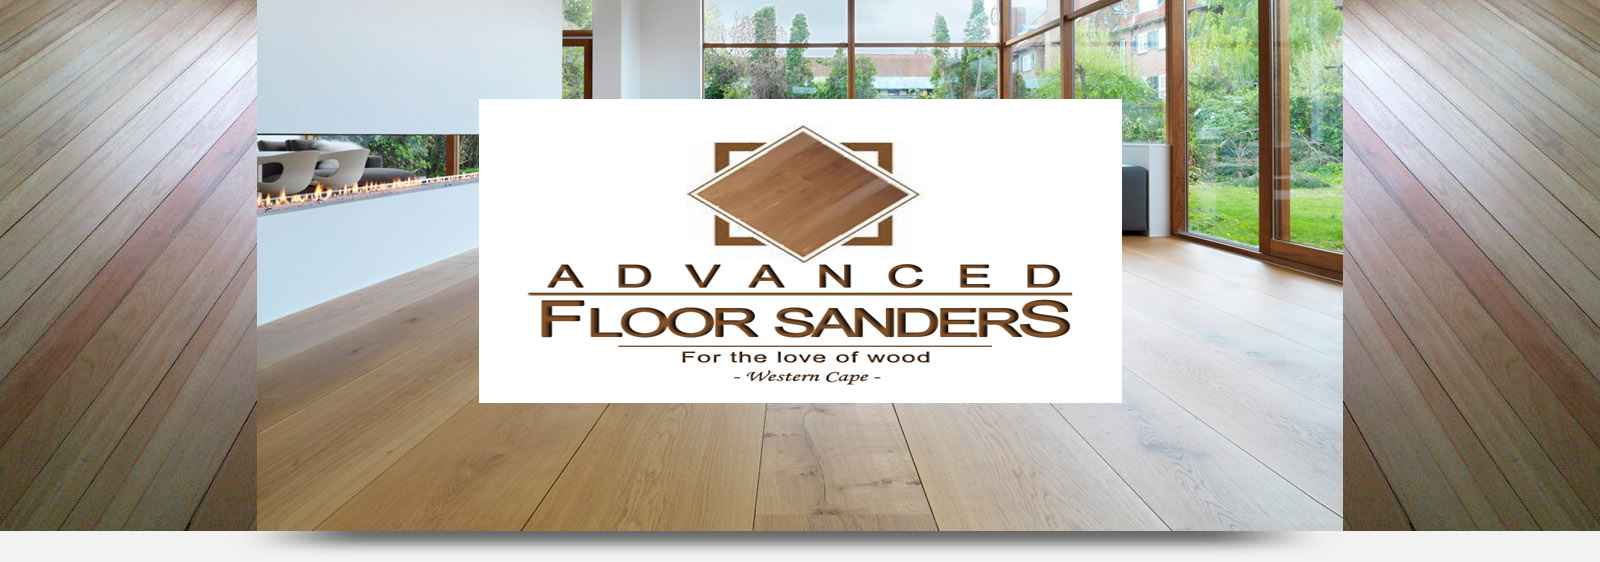 Floor Sanding Cape Town Dustless Services On Wooden Flooring Parquet Decking Refurbishment Advanced Sanders